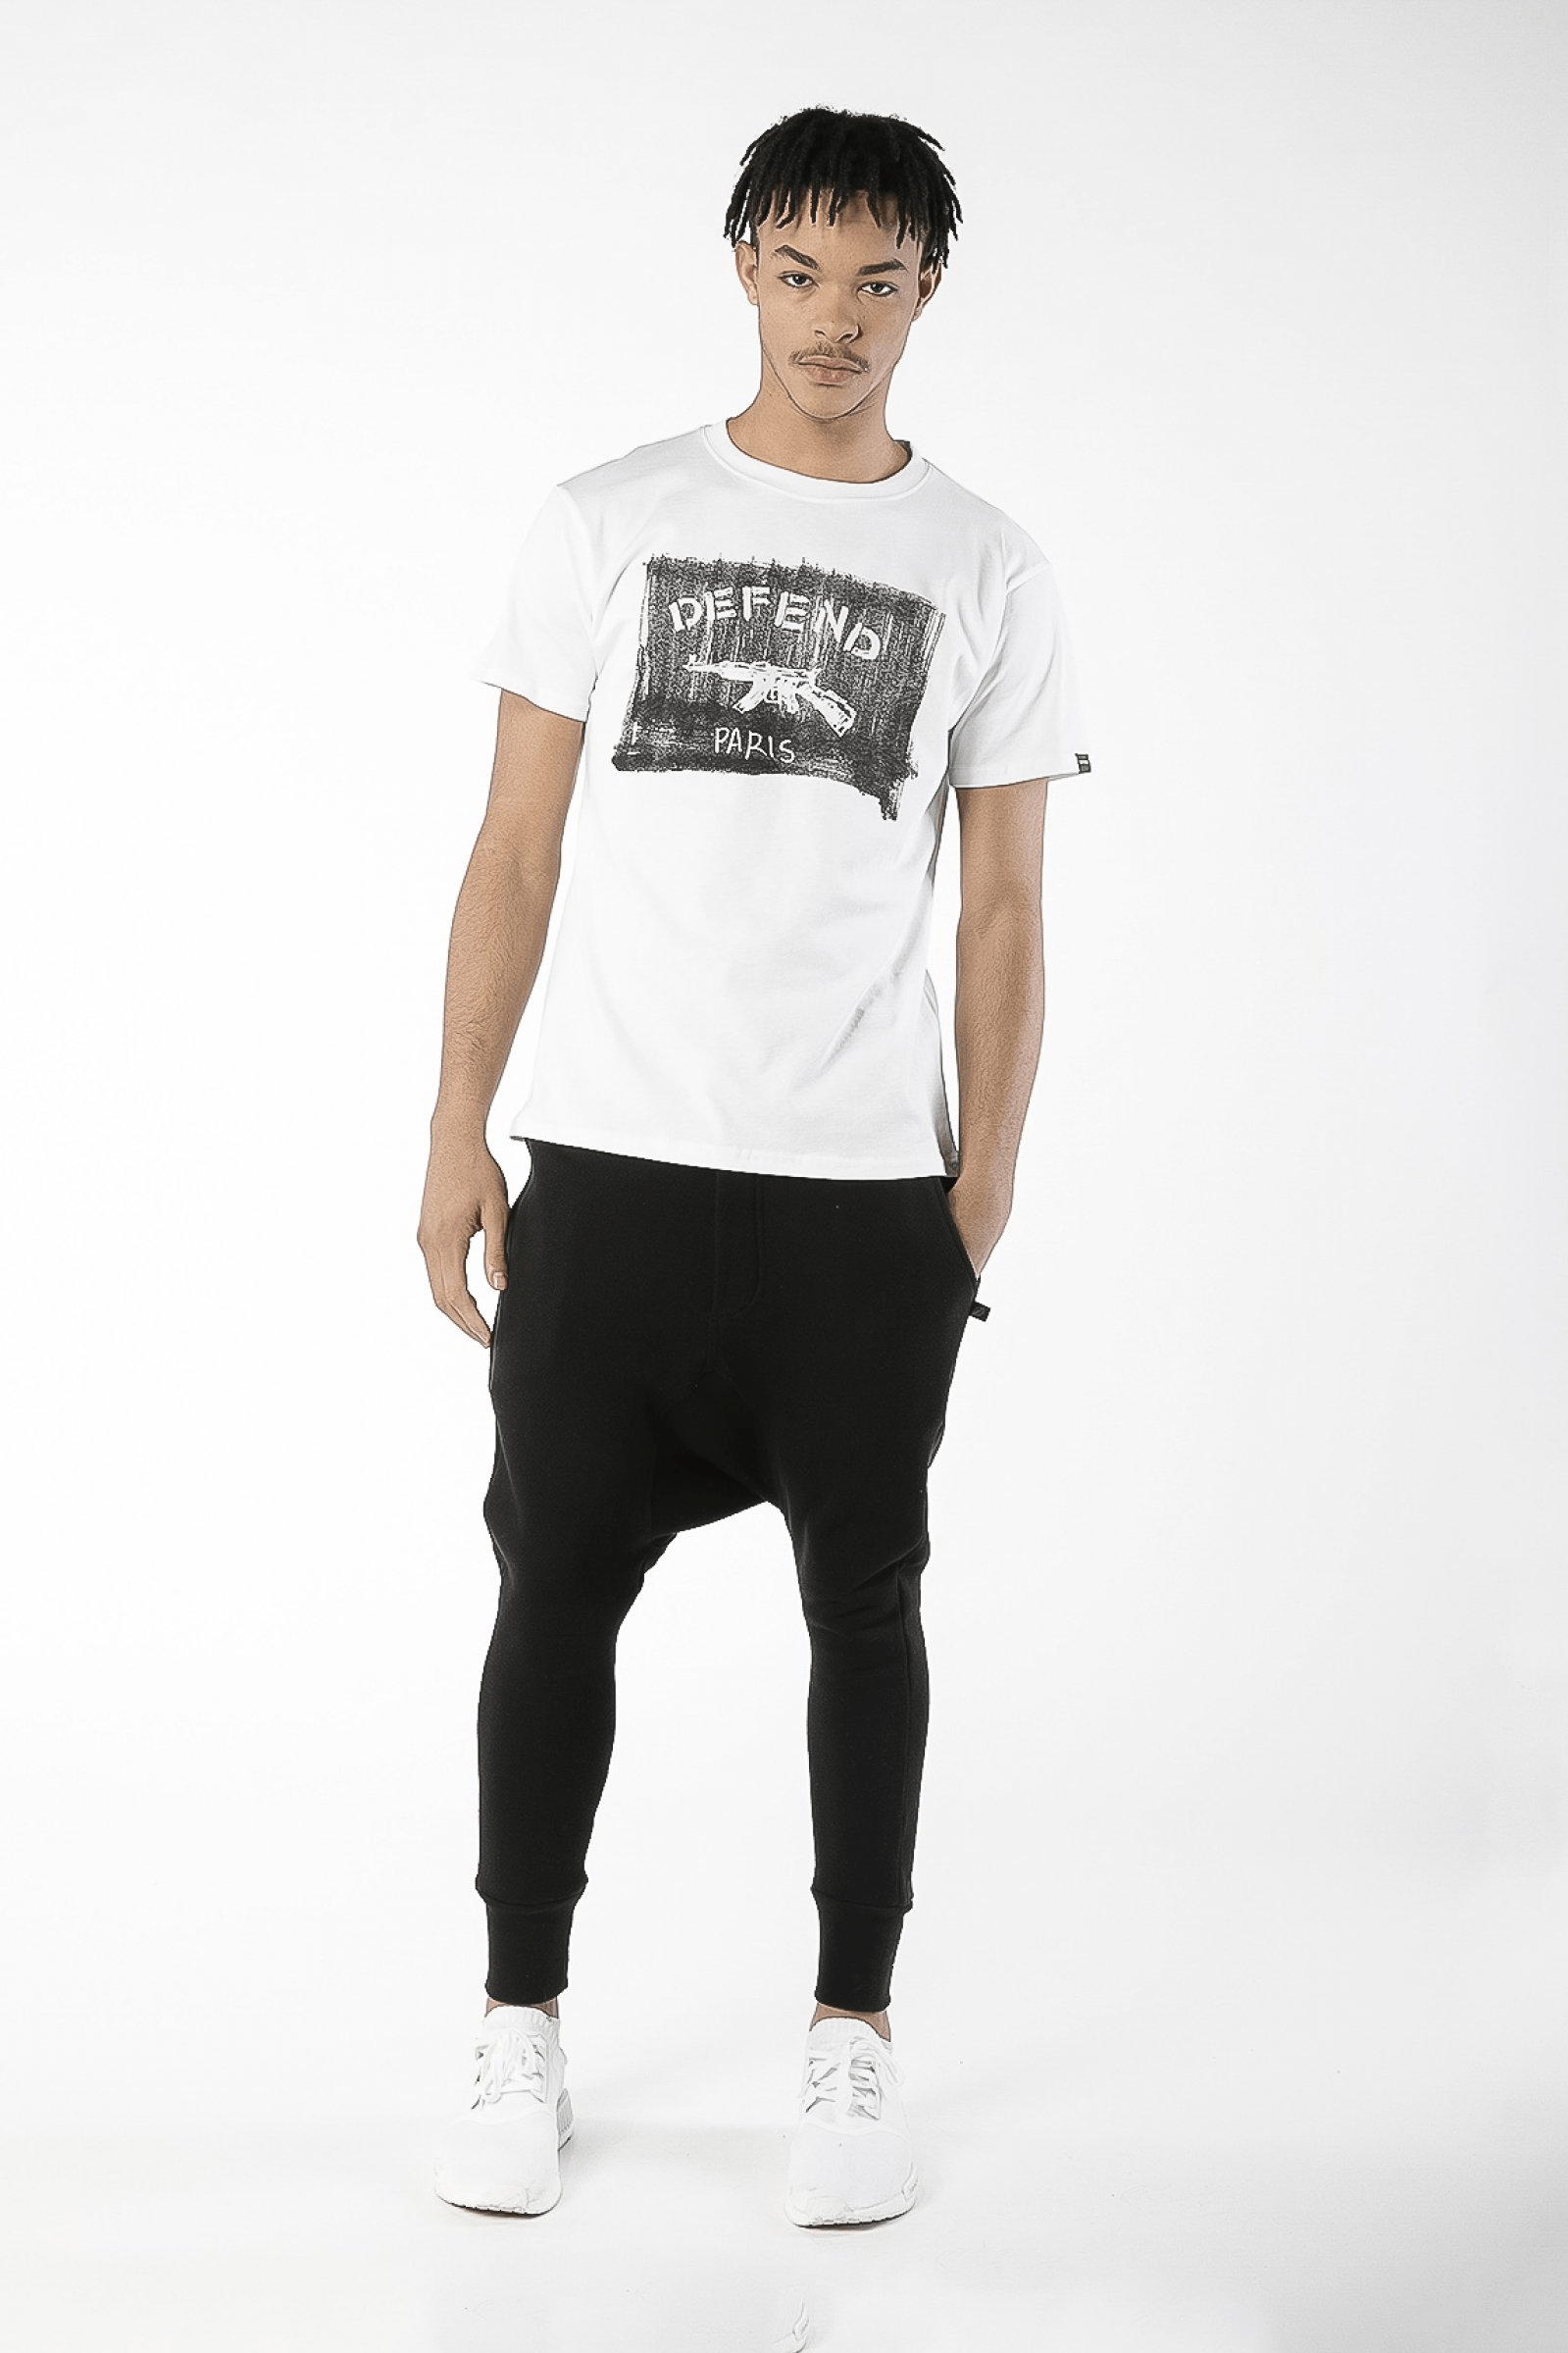 Bendigo Cotton Tee White - The Bobby Boga